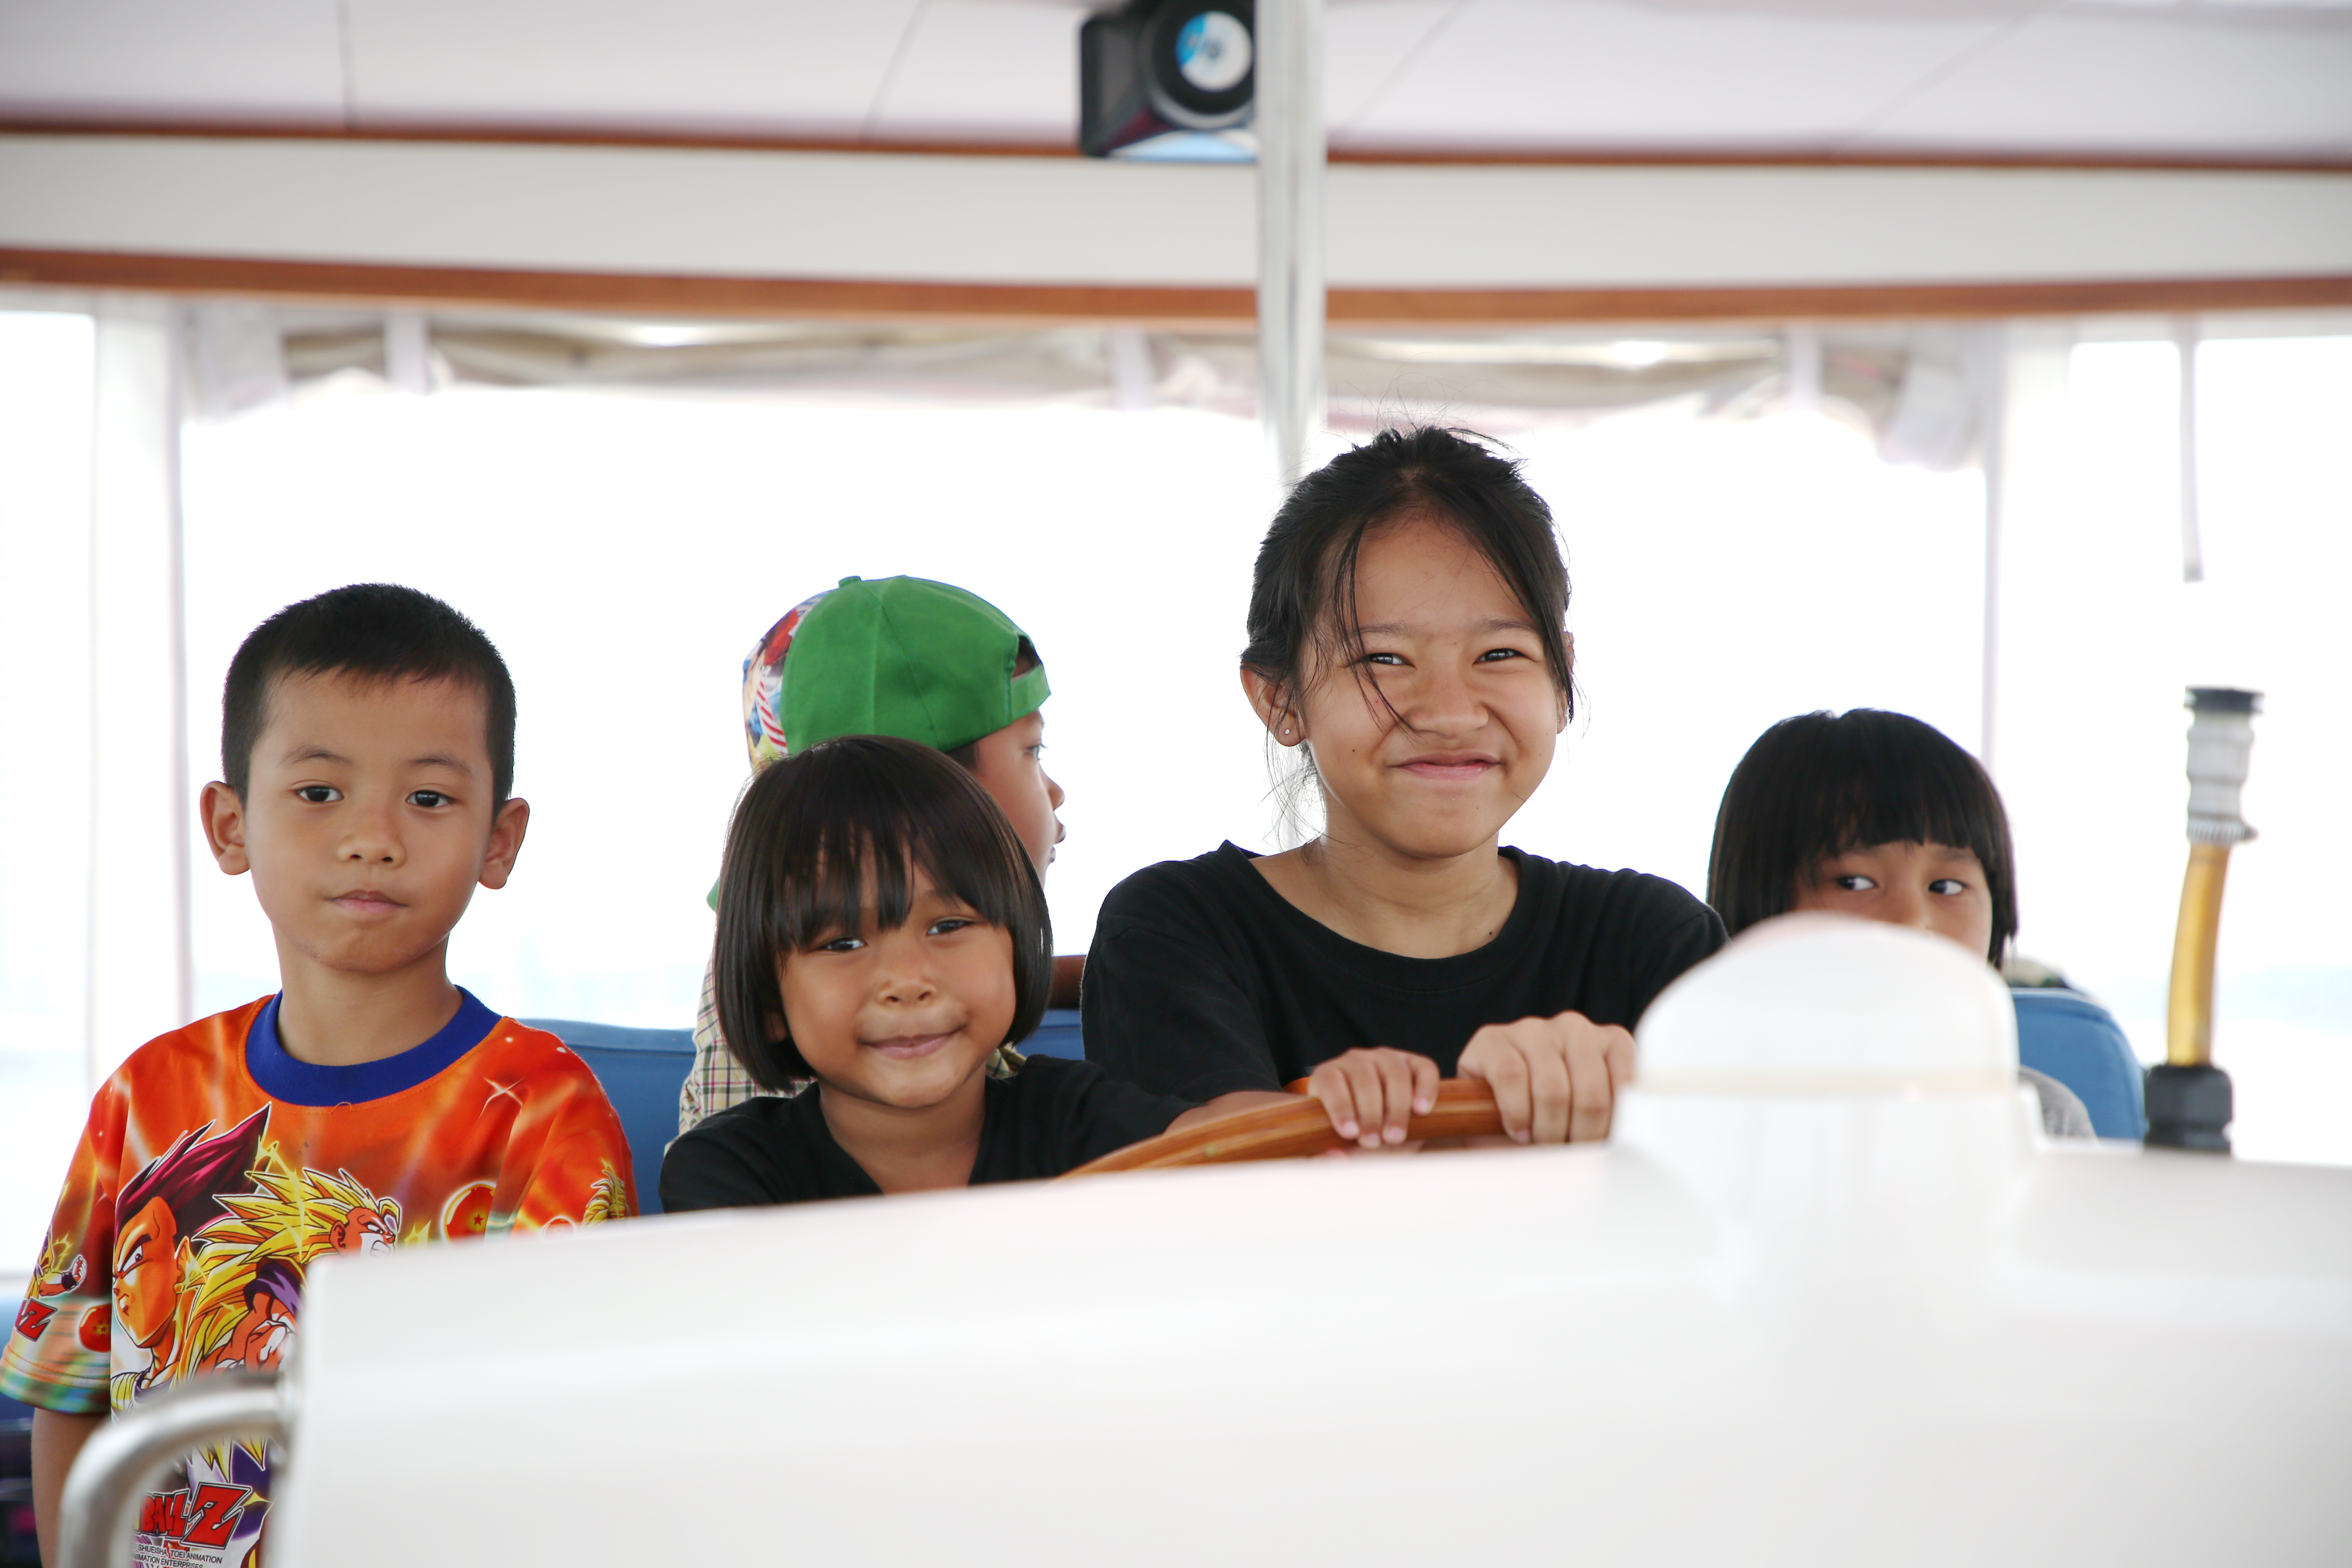 All hands to the wheel – children from the Camillian Center steer for home.